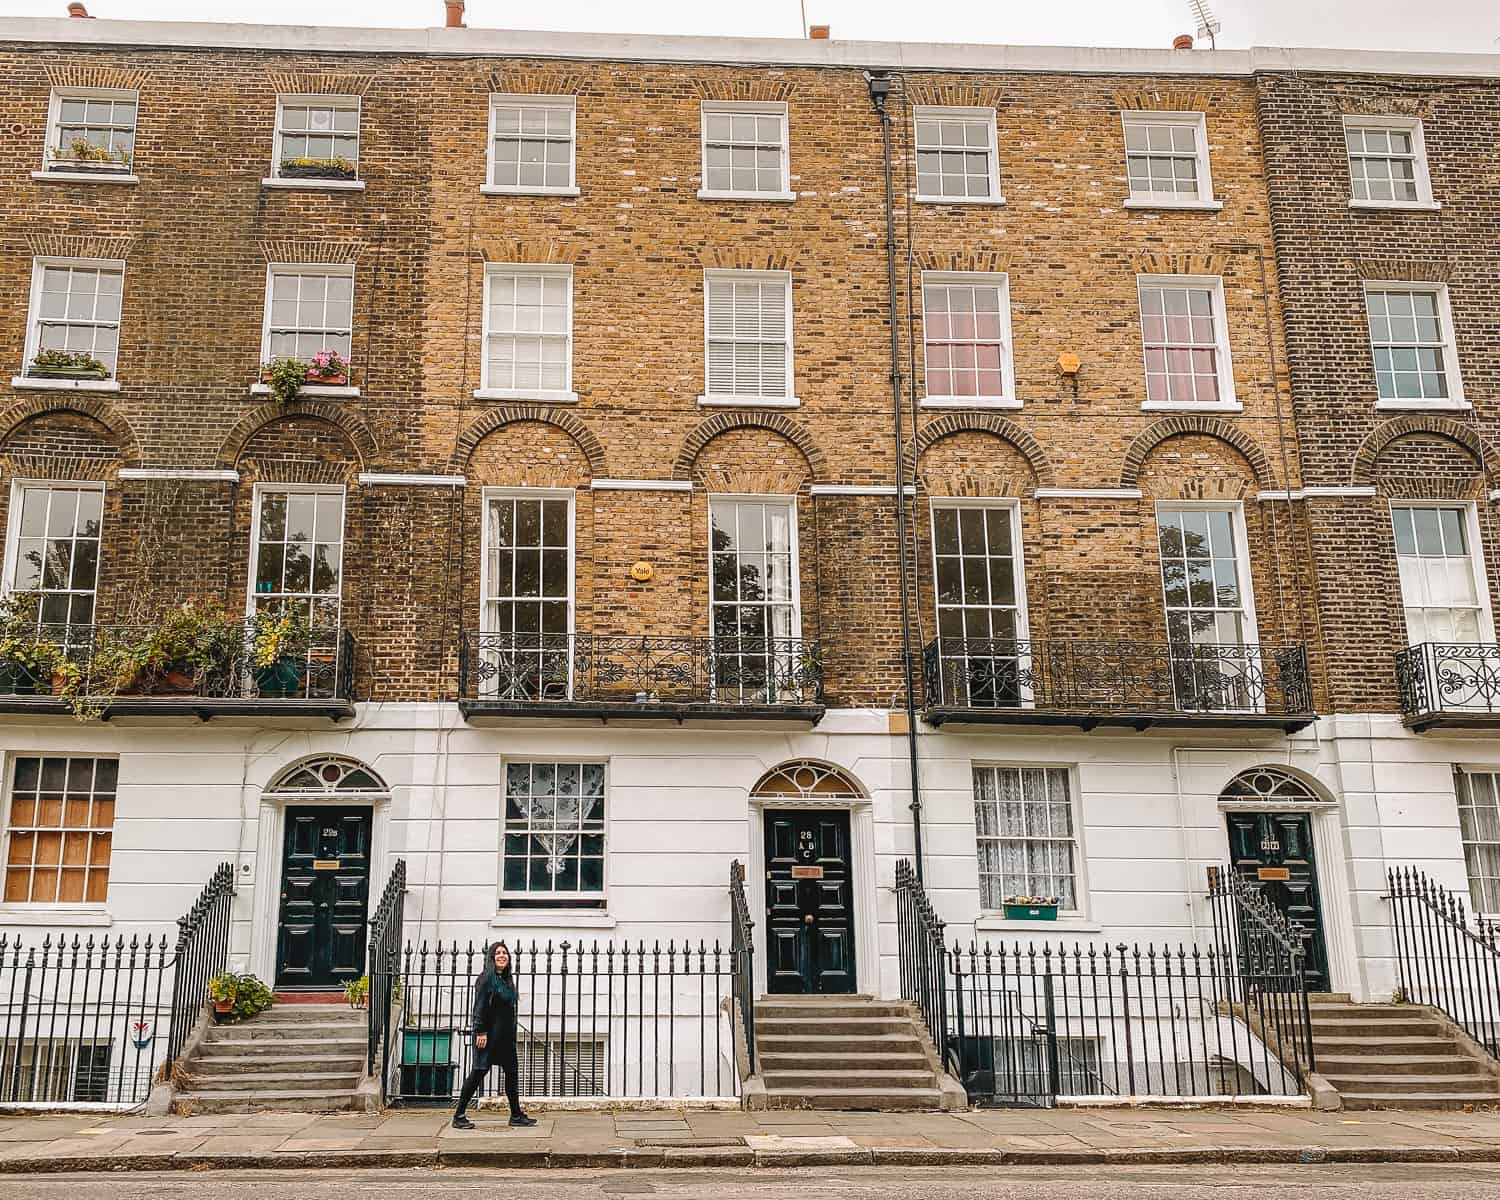 12 Grimmauld place London Claremont Square Harry Potter filming location